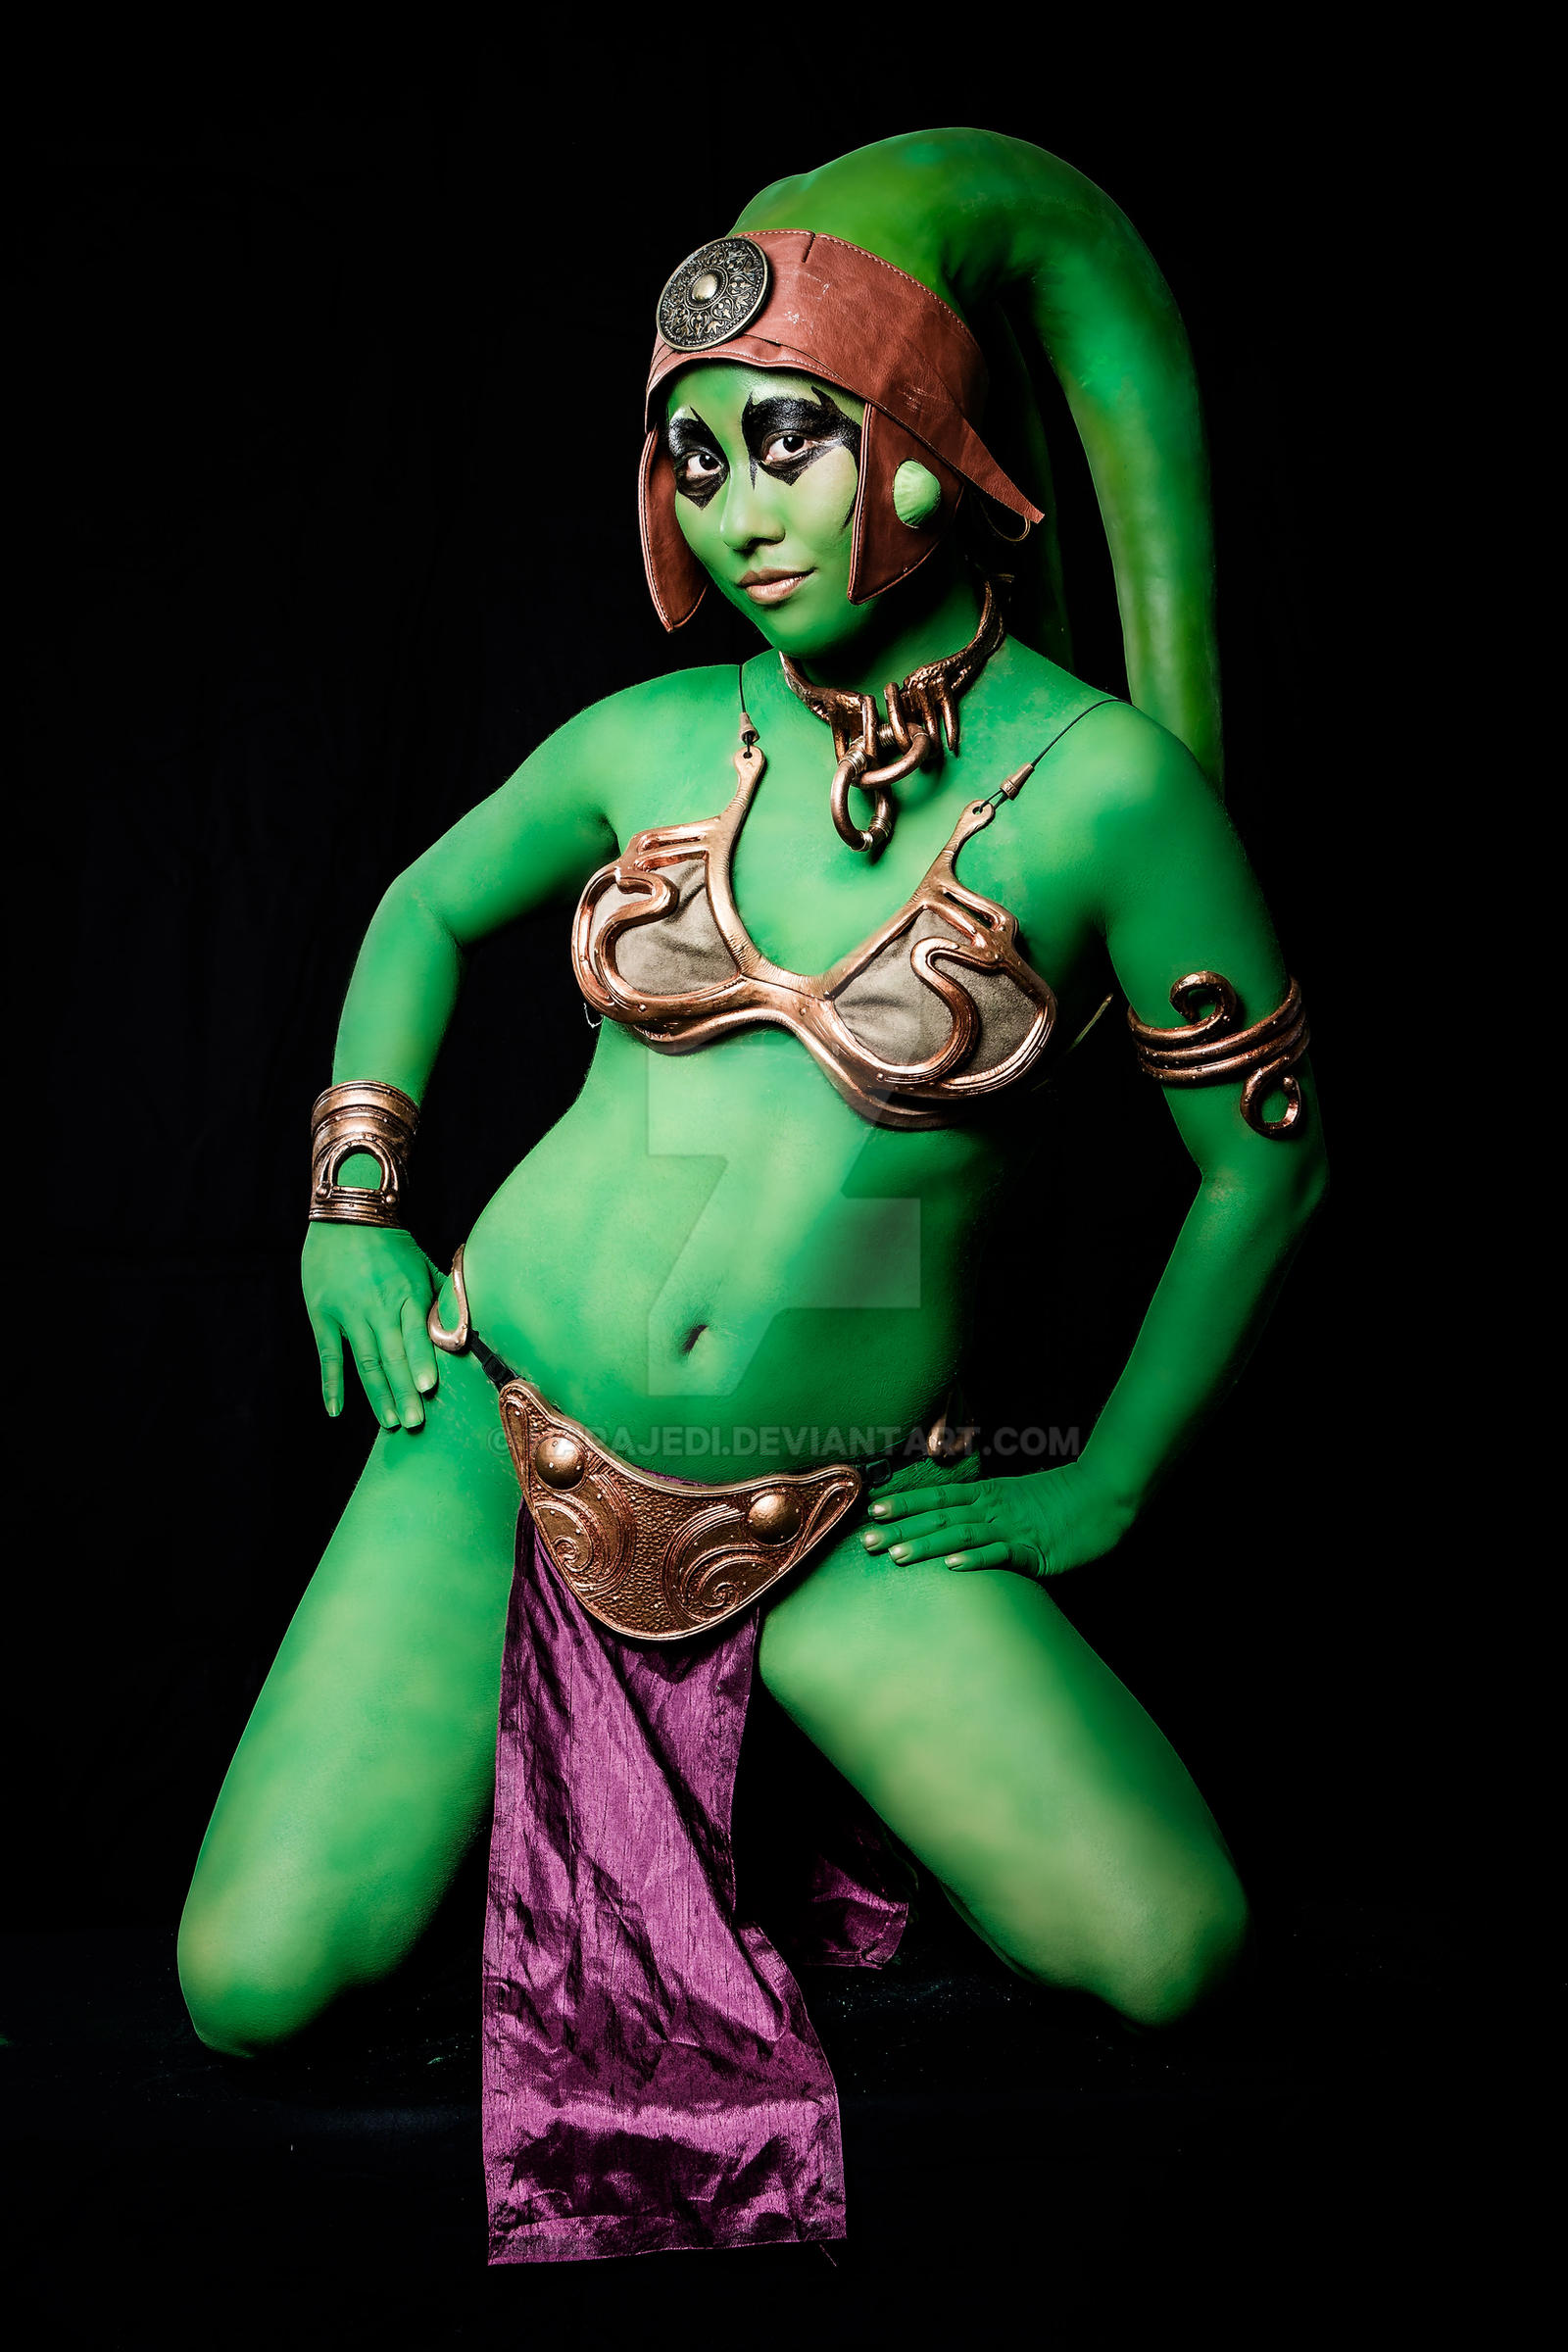 Twi'lek porn videos anime photo